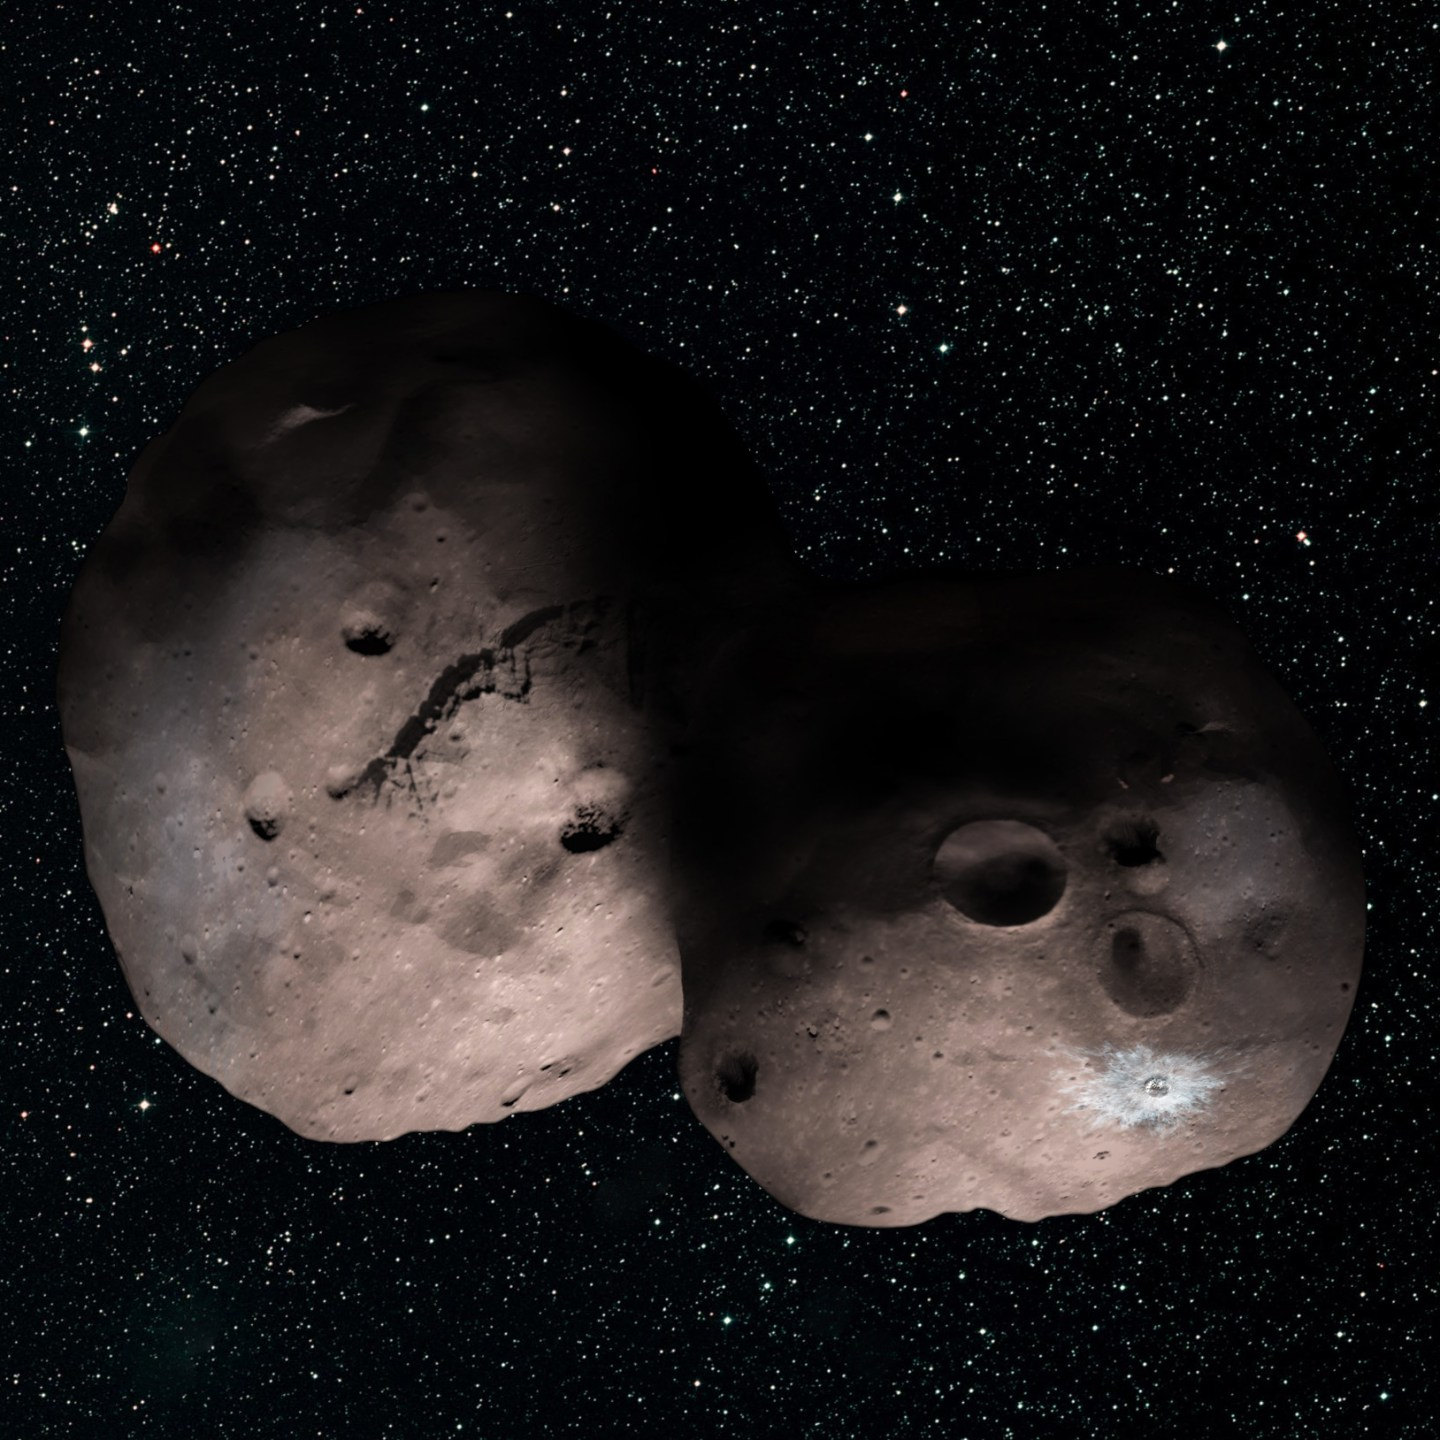 The Shadow of 2014 MU69 Tells a Tantalizing Tale